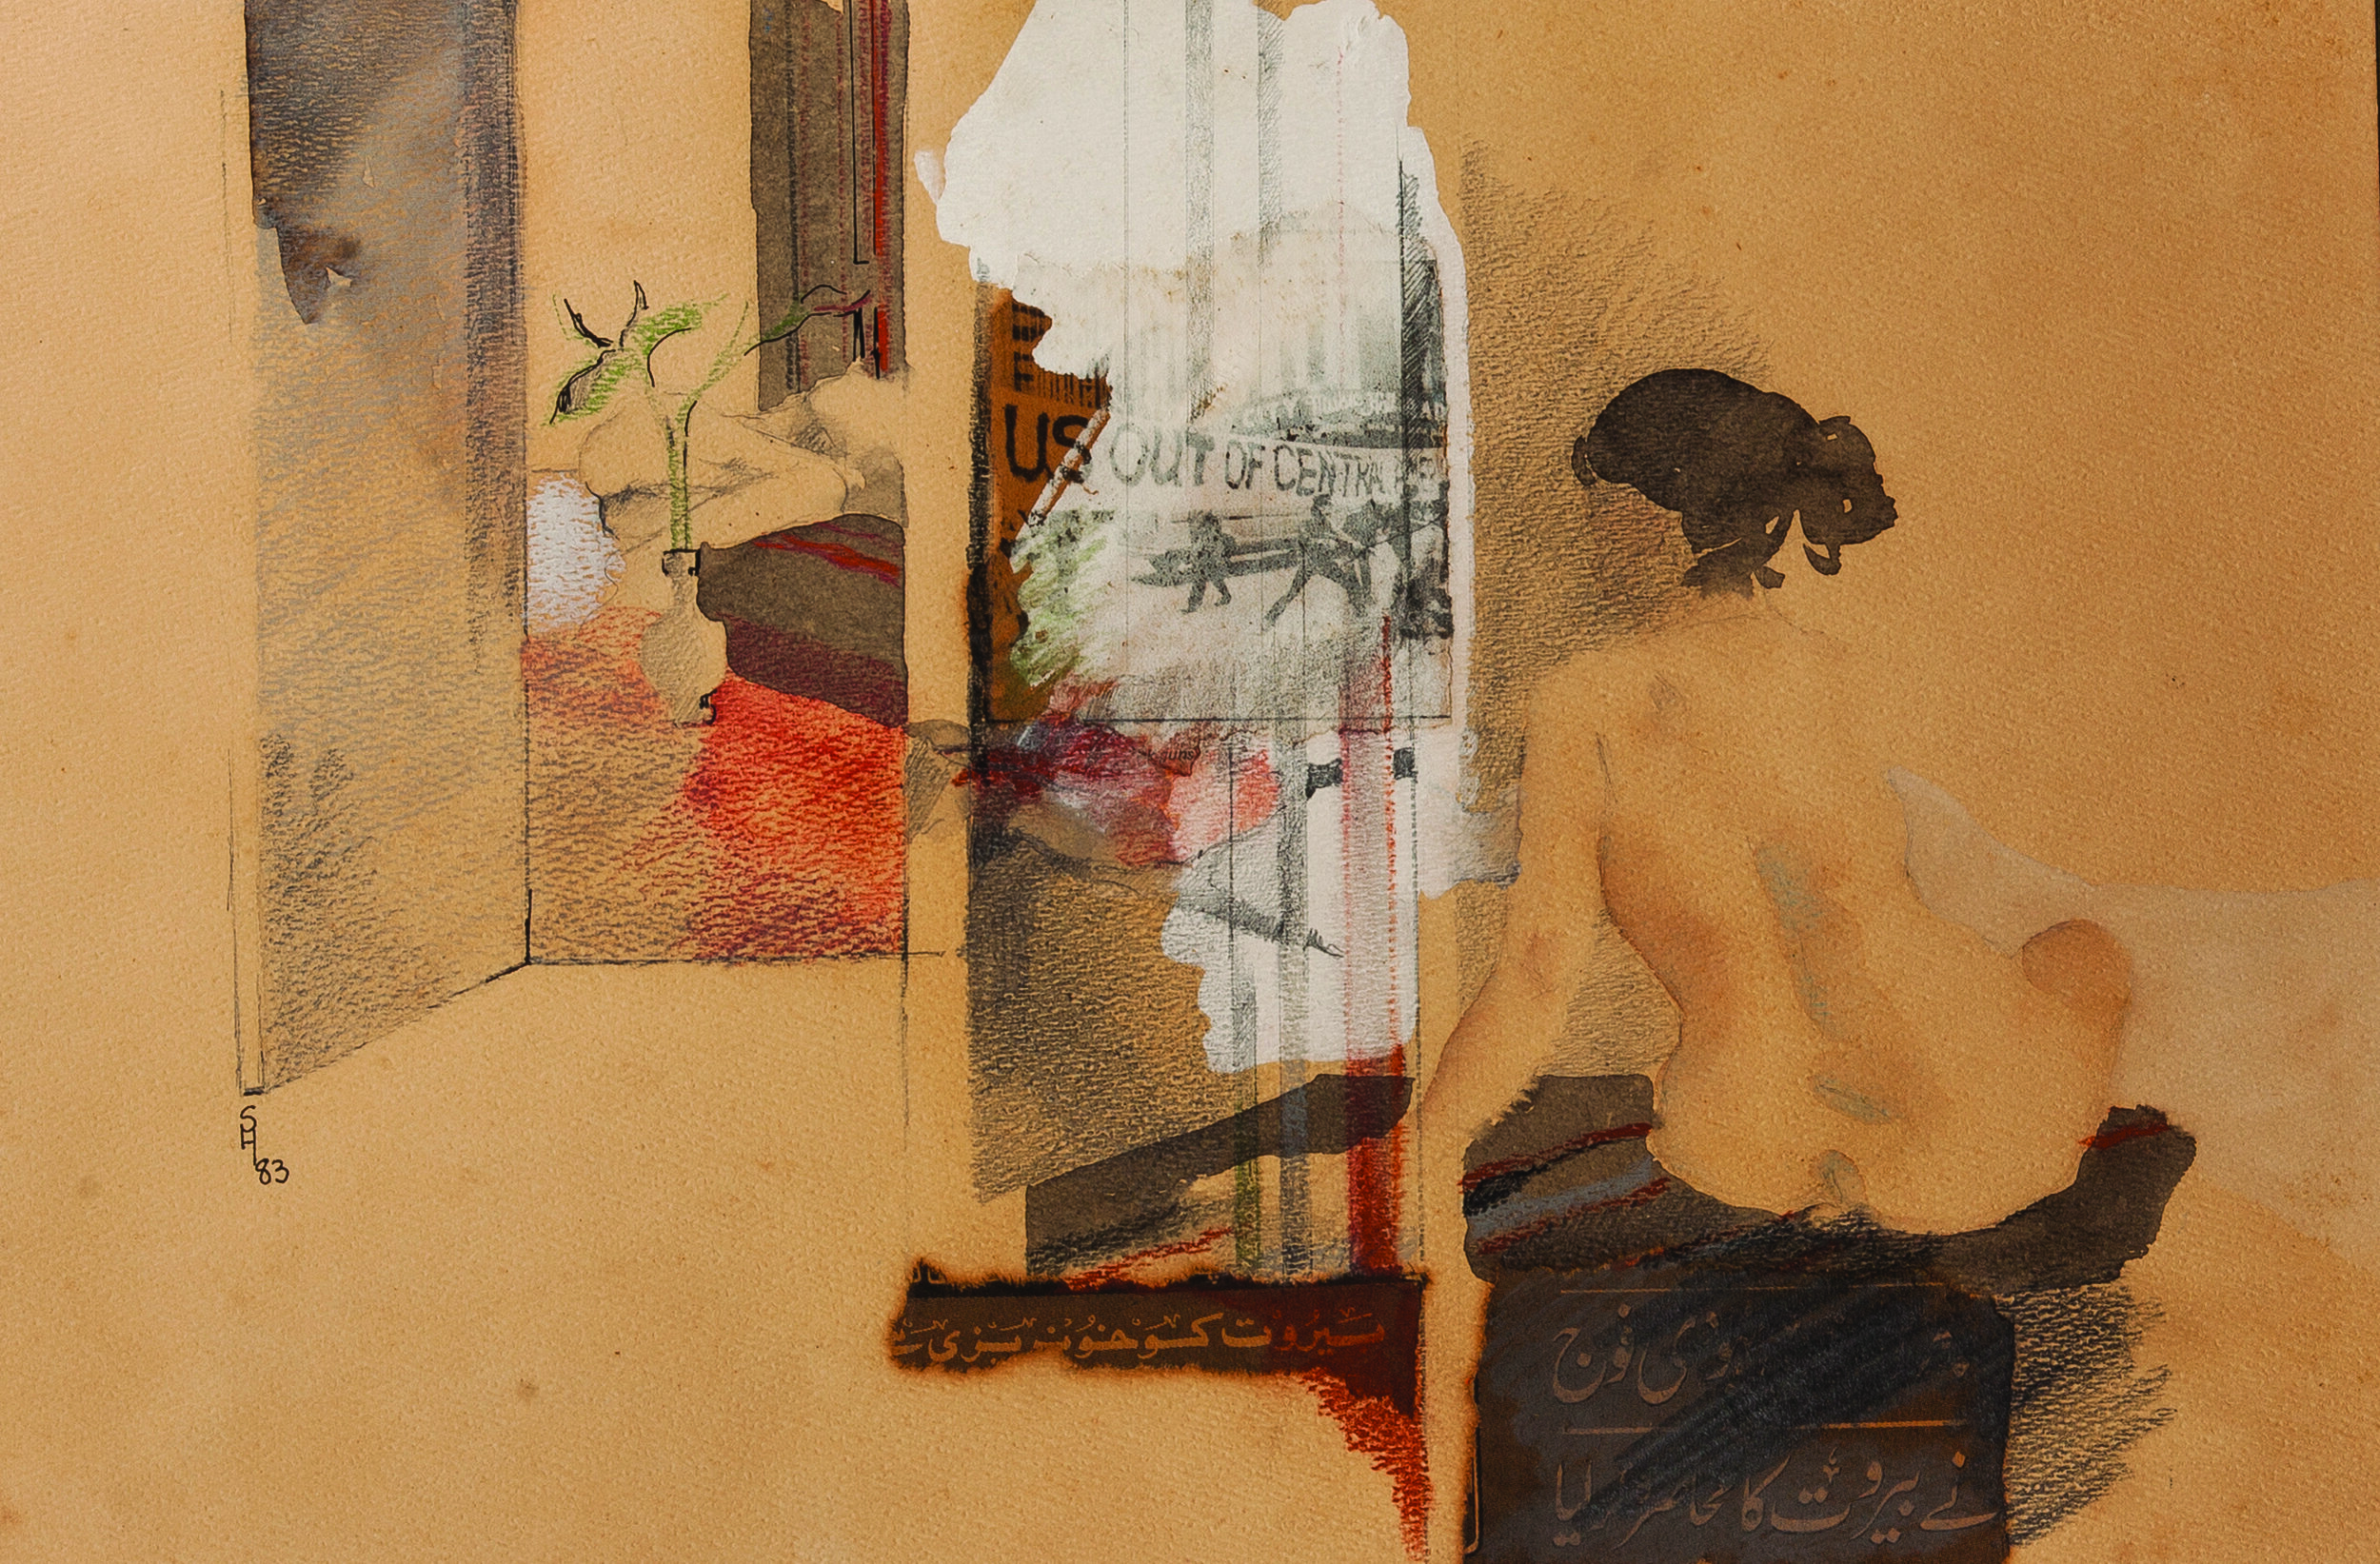 Salima Hashmi,  The Life and Times of… (1983), Mixed Media on Paper. Courtesy of Rangoonwala Foundation.